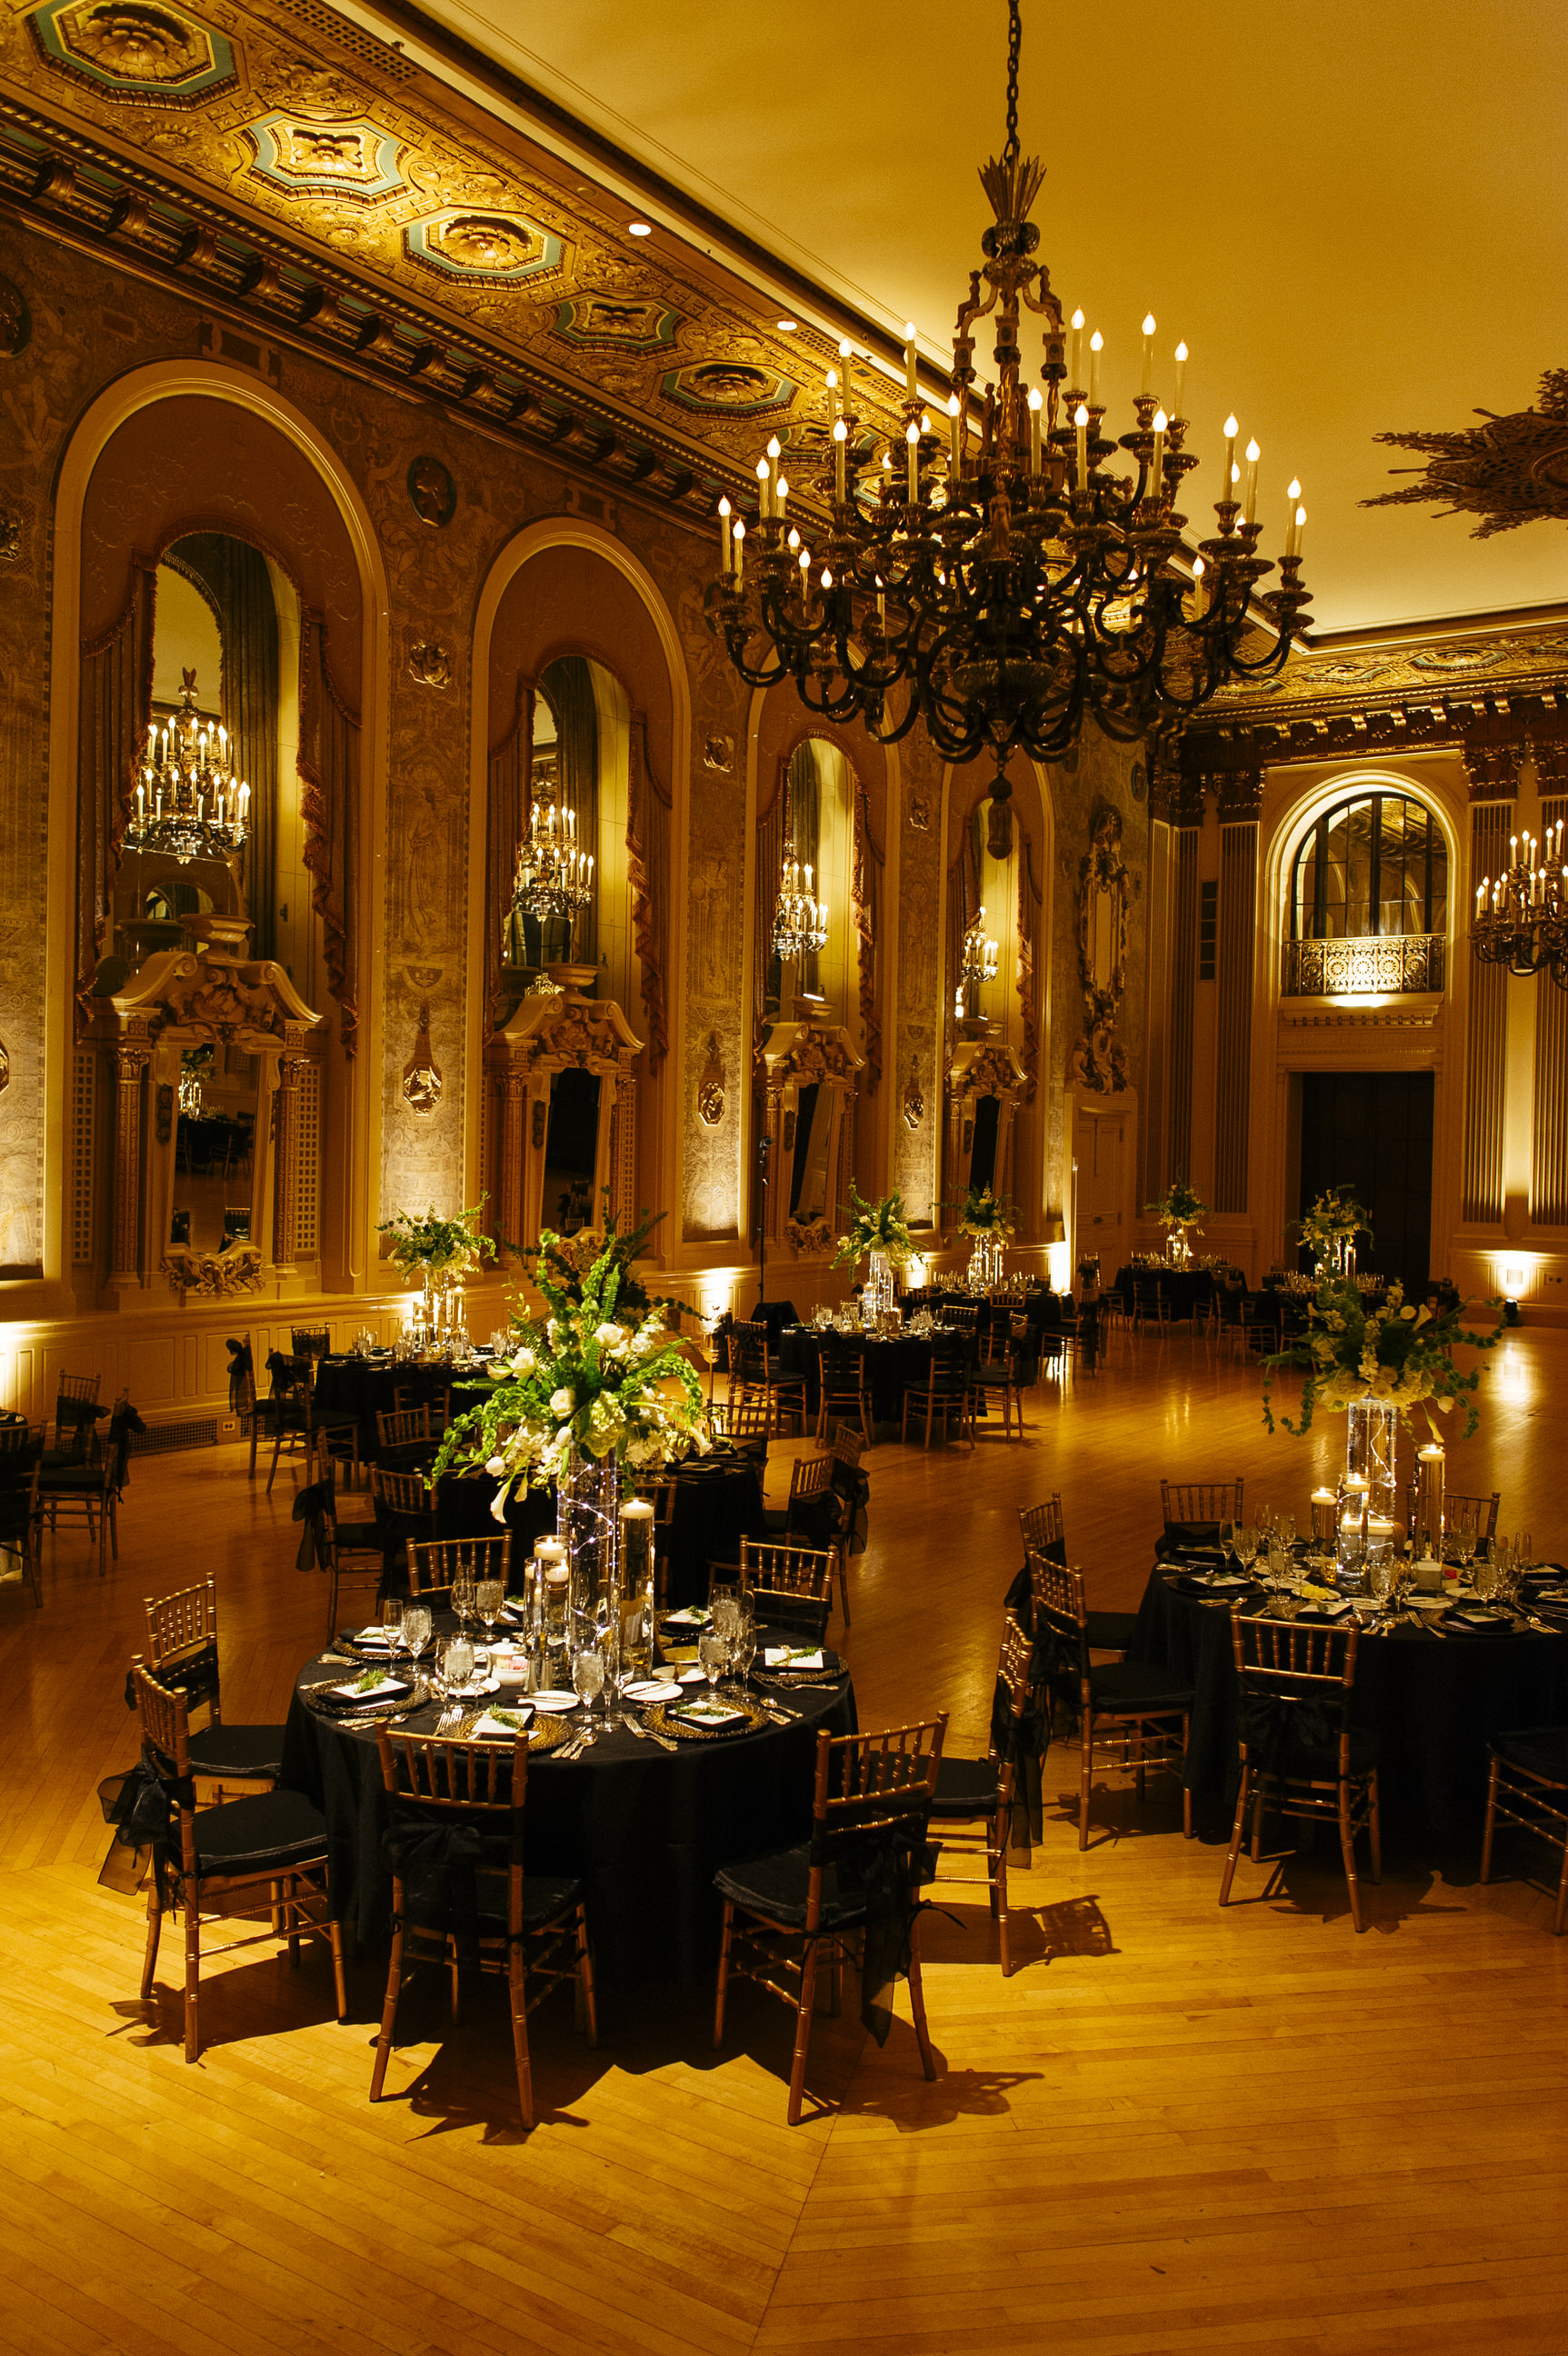 25 Hotel DuPont Wedding Reception Candlelight Green White Flower Centerpieces.jpg